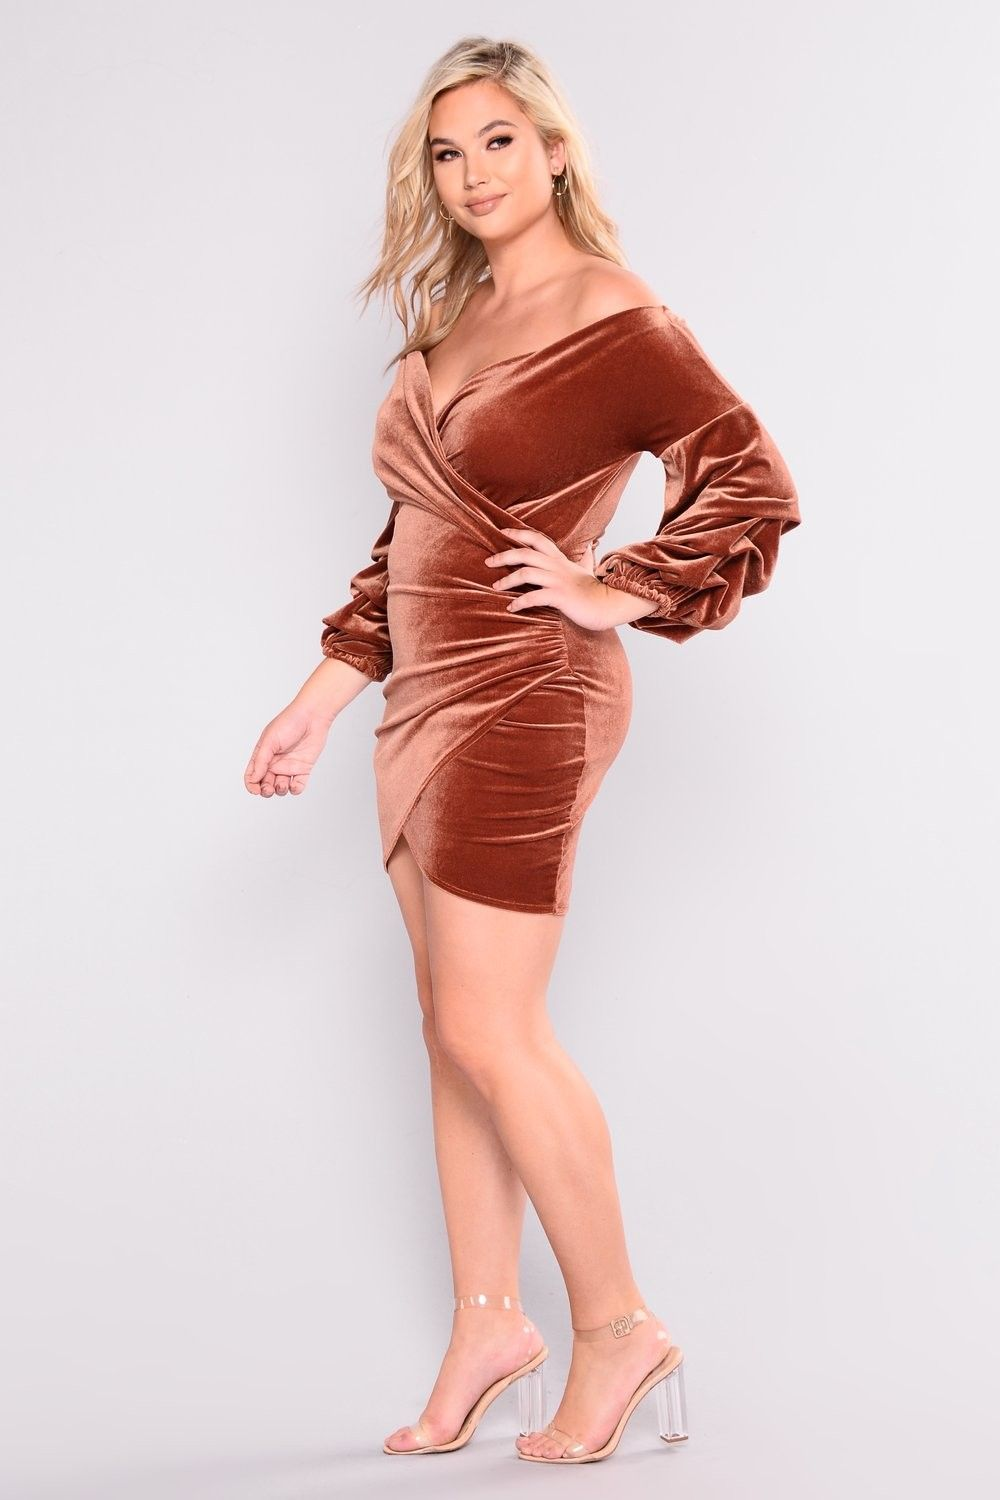 f1a7c84ff2 Plus Size Blair Velvet Dress - Rust  29.99  fashion  ootd  outfit  oufits